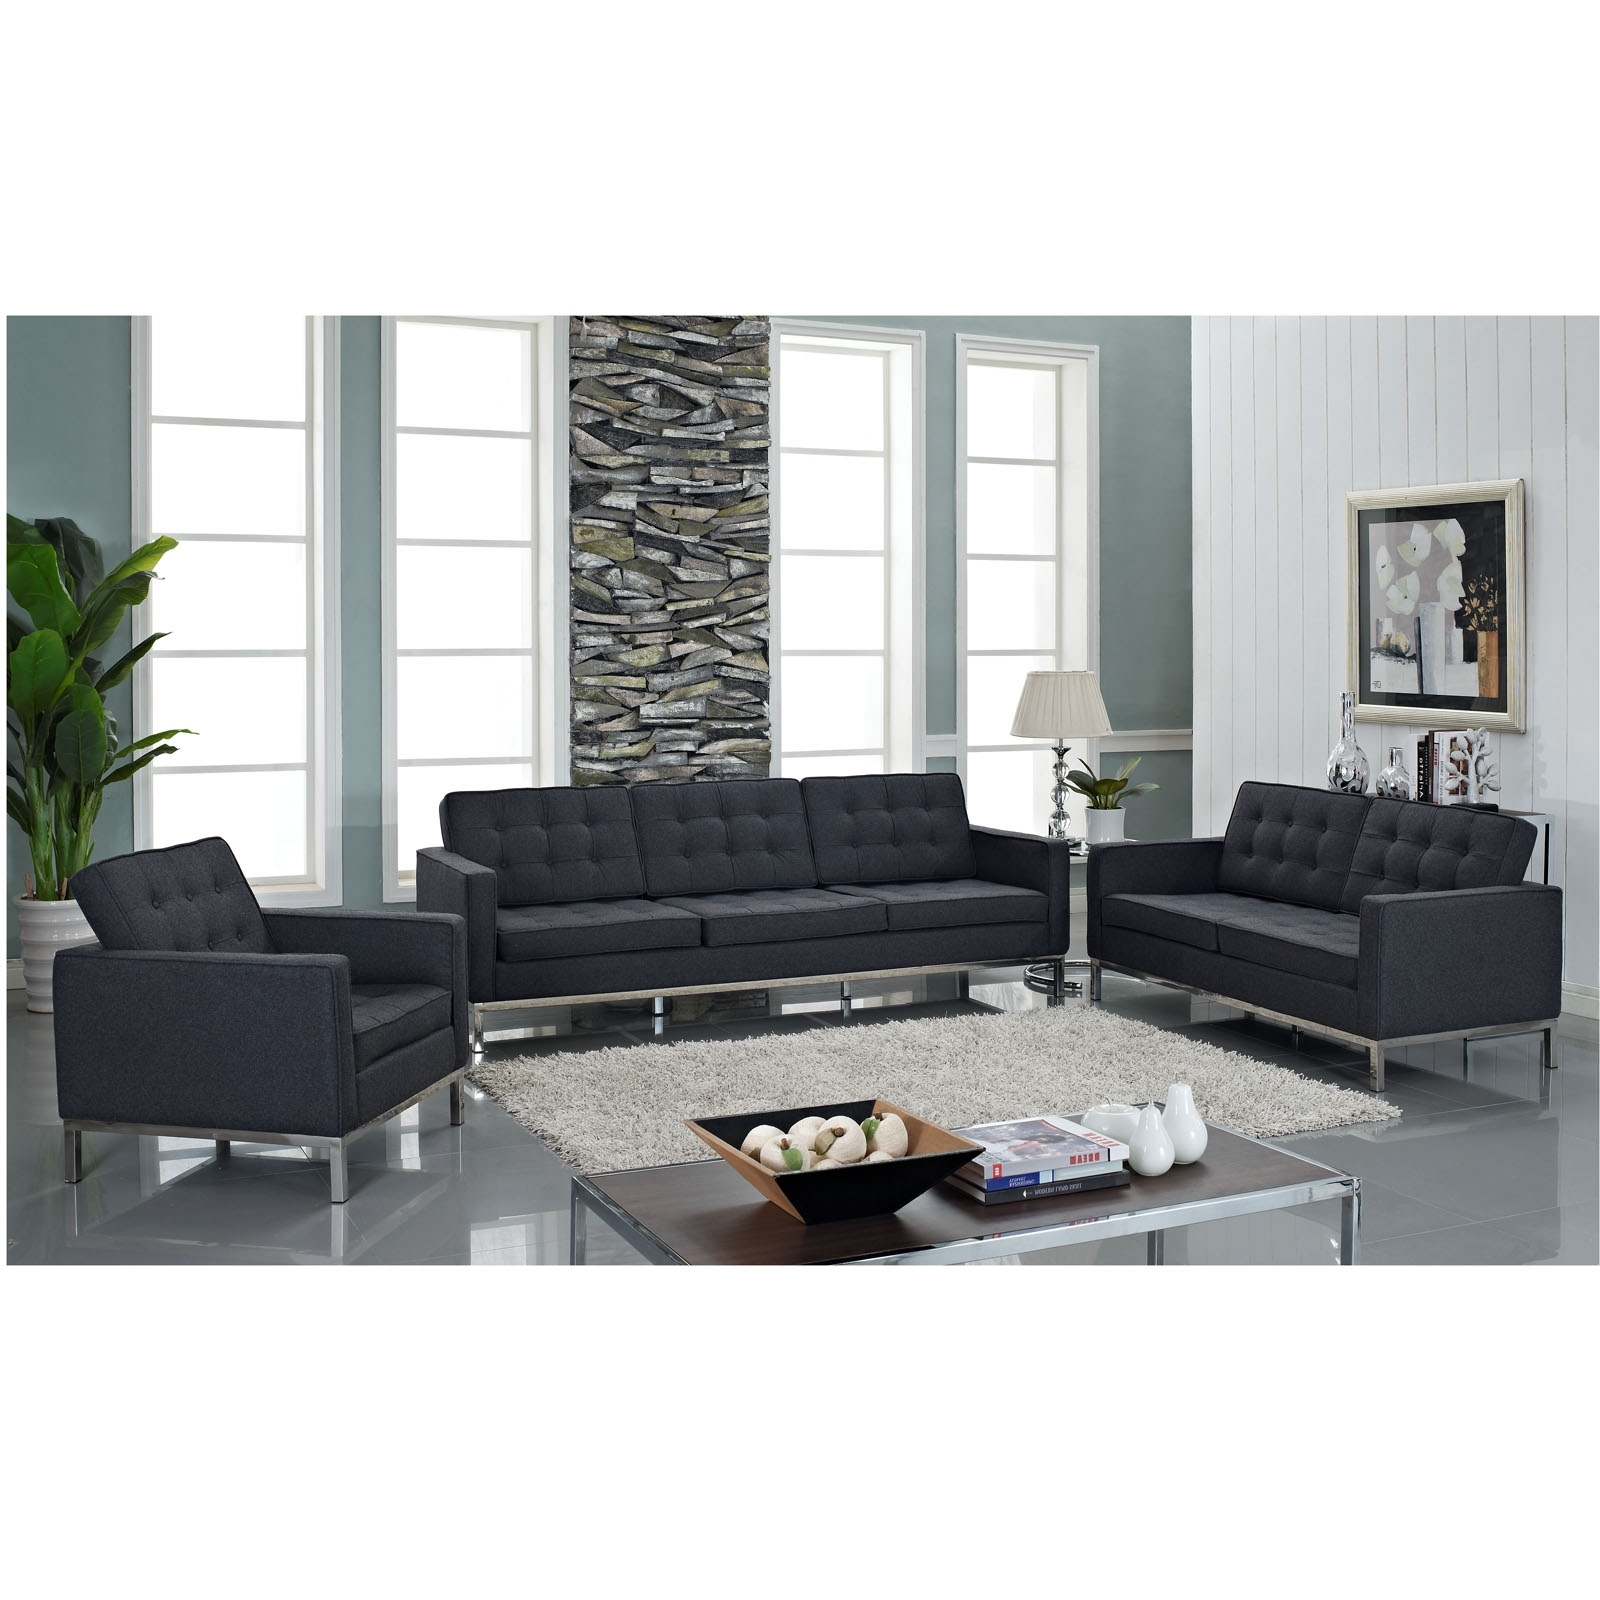 Trendy Florence Sofas And Loveseats Inside Florence Knoll Style Sofa Couch – Wool (View 17 of 20)